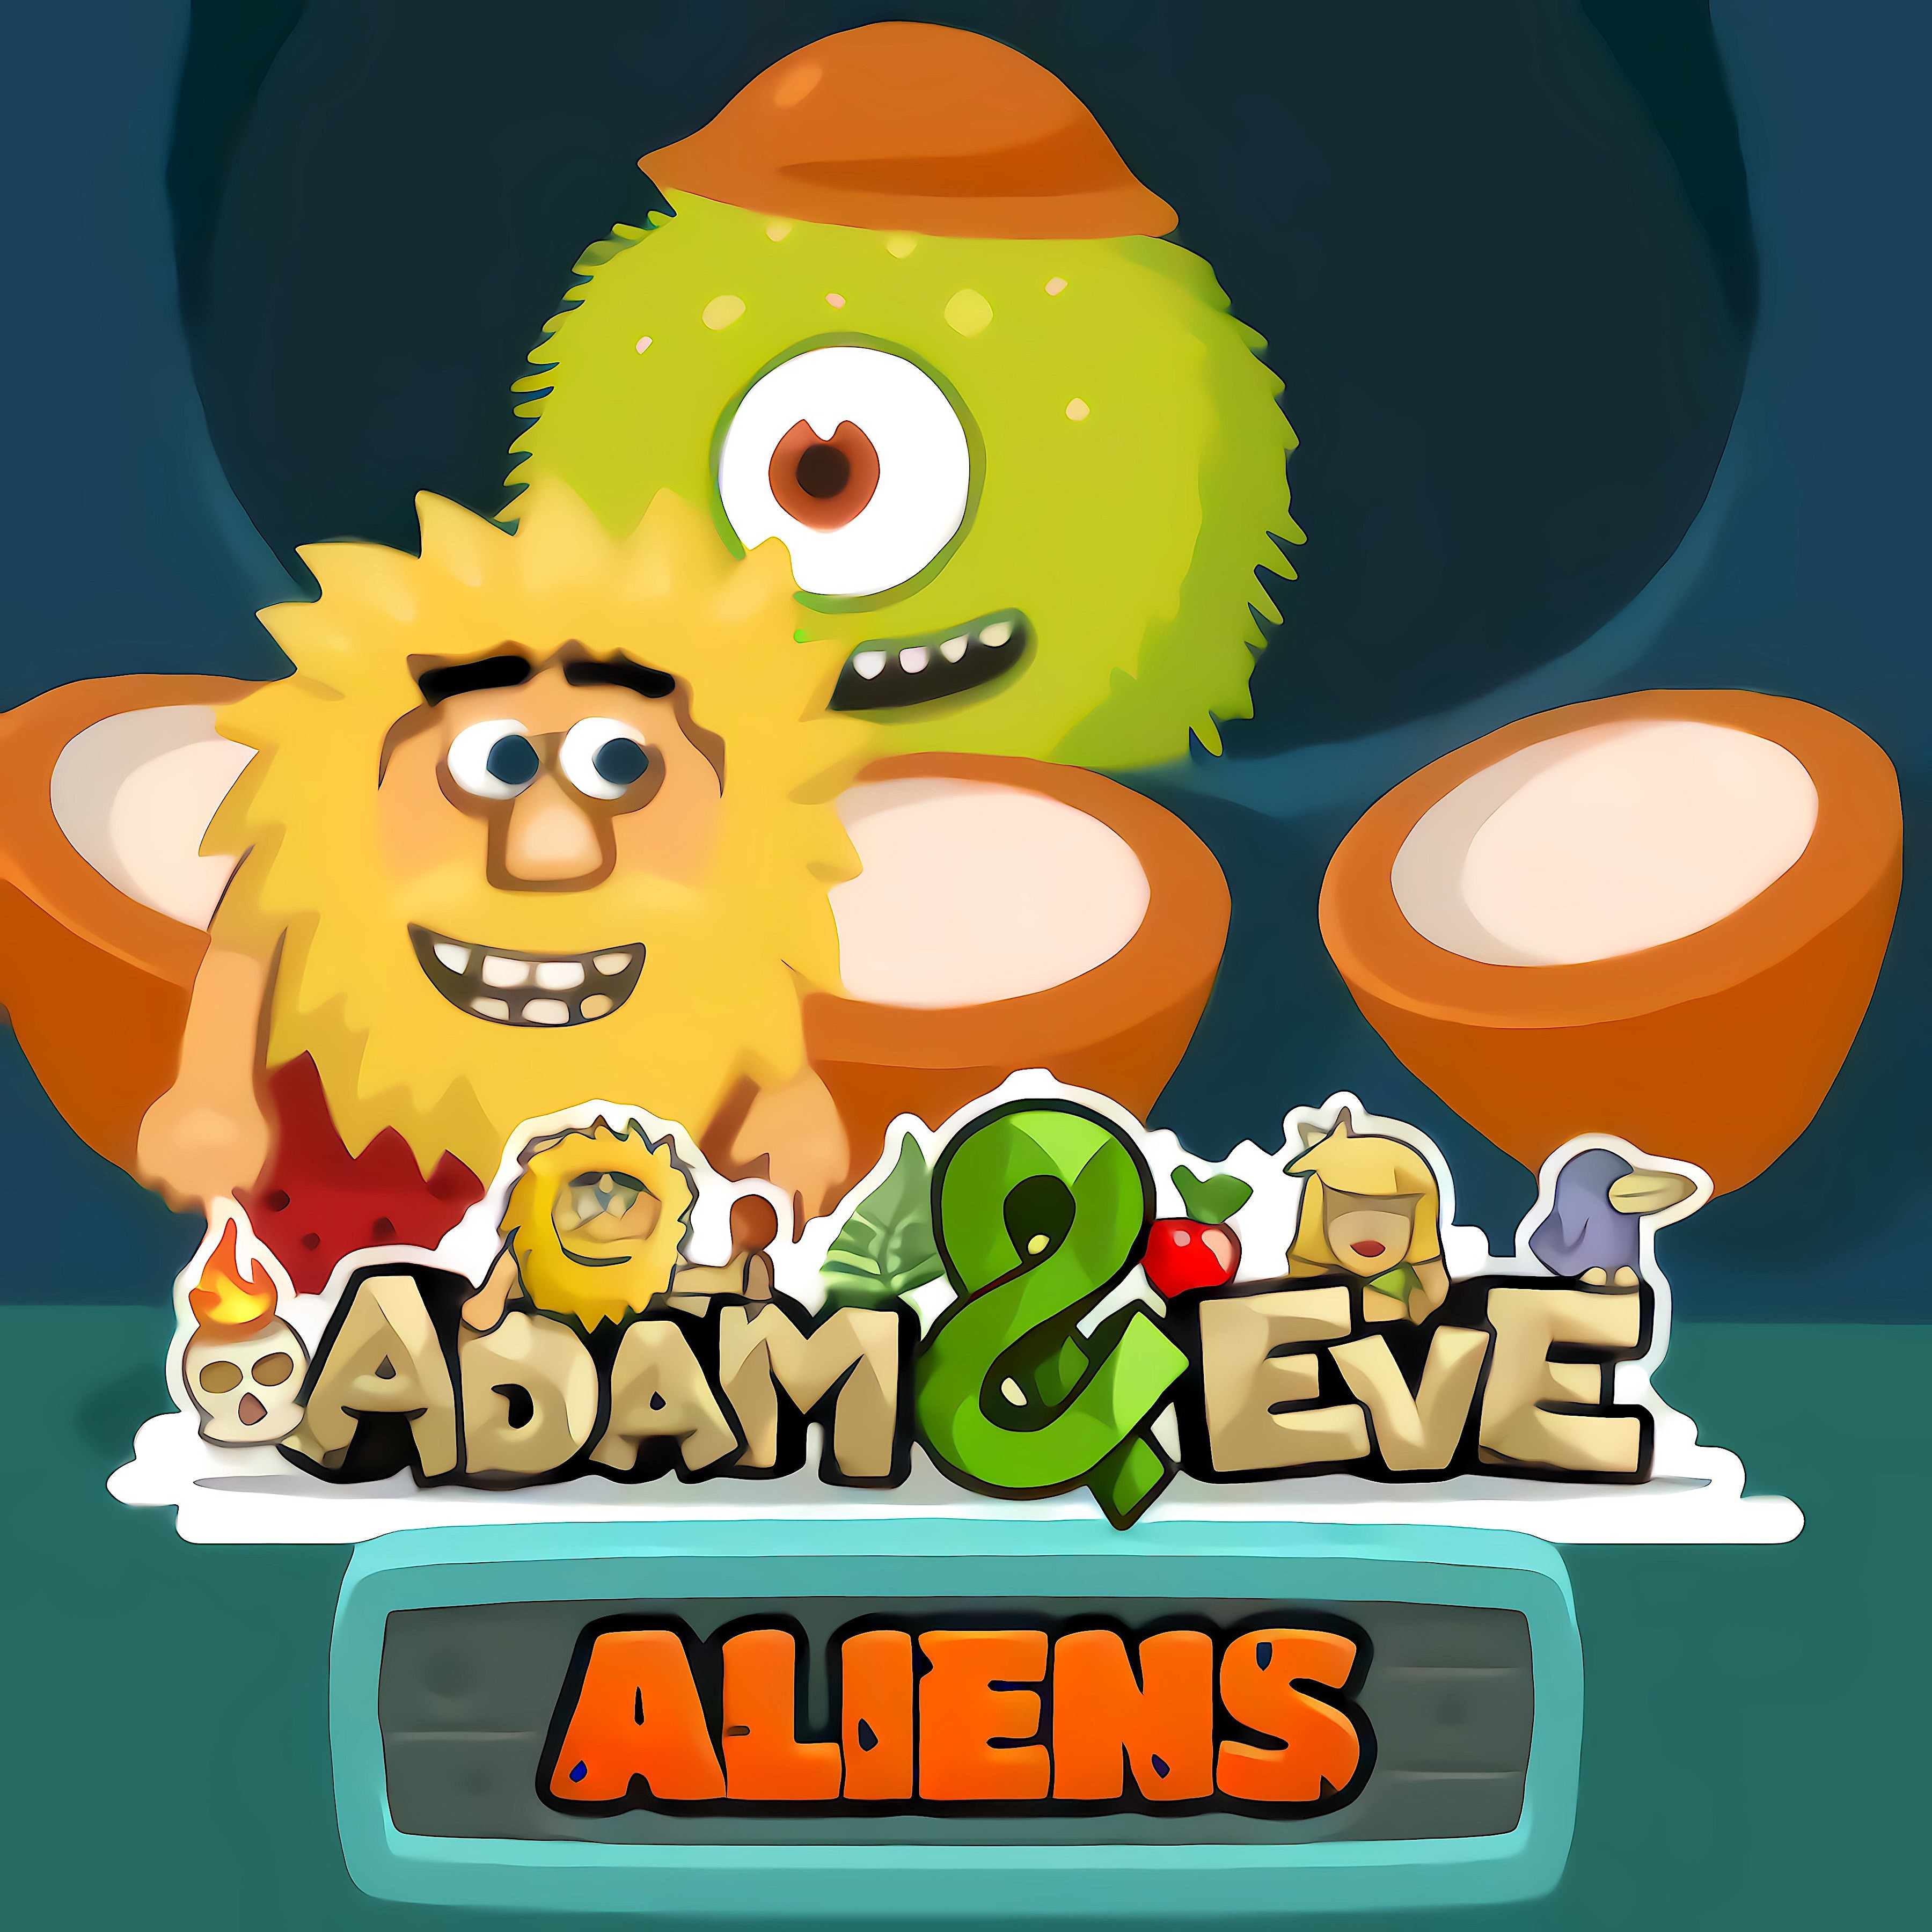 Adam and Eve Aliens